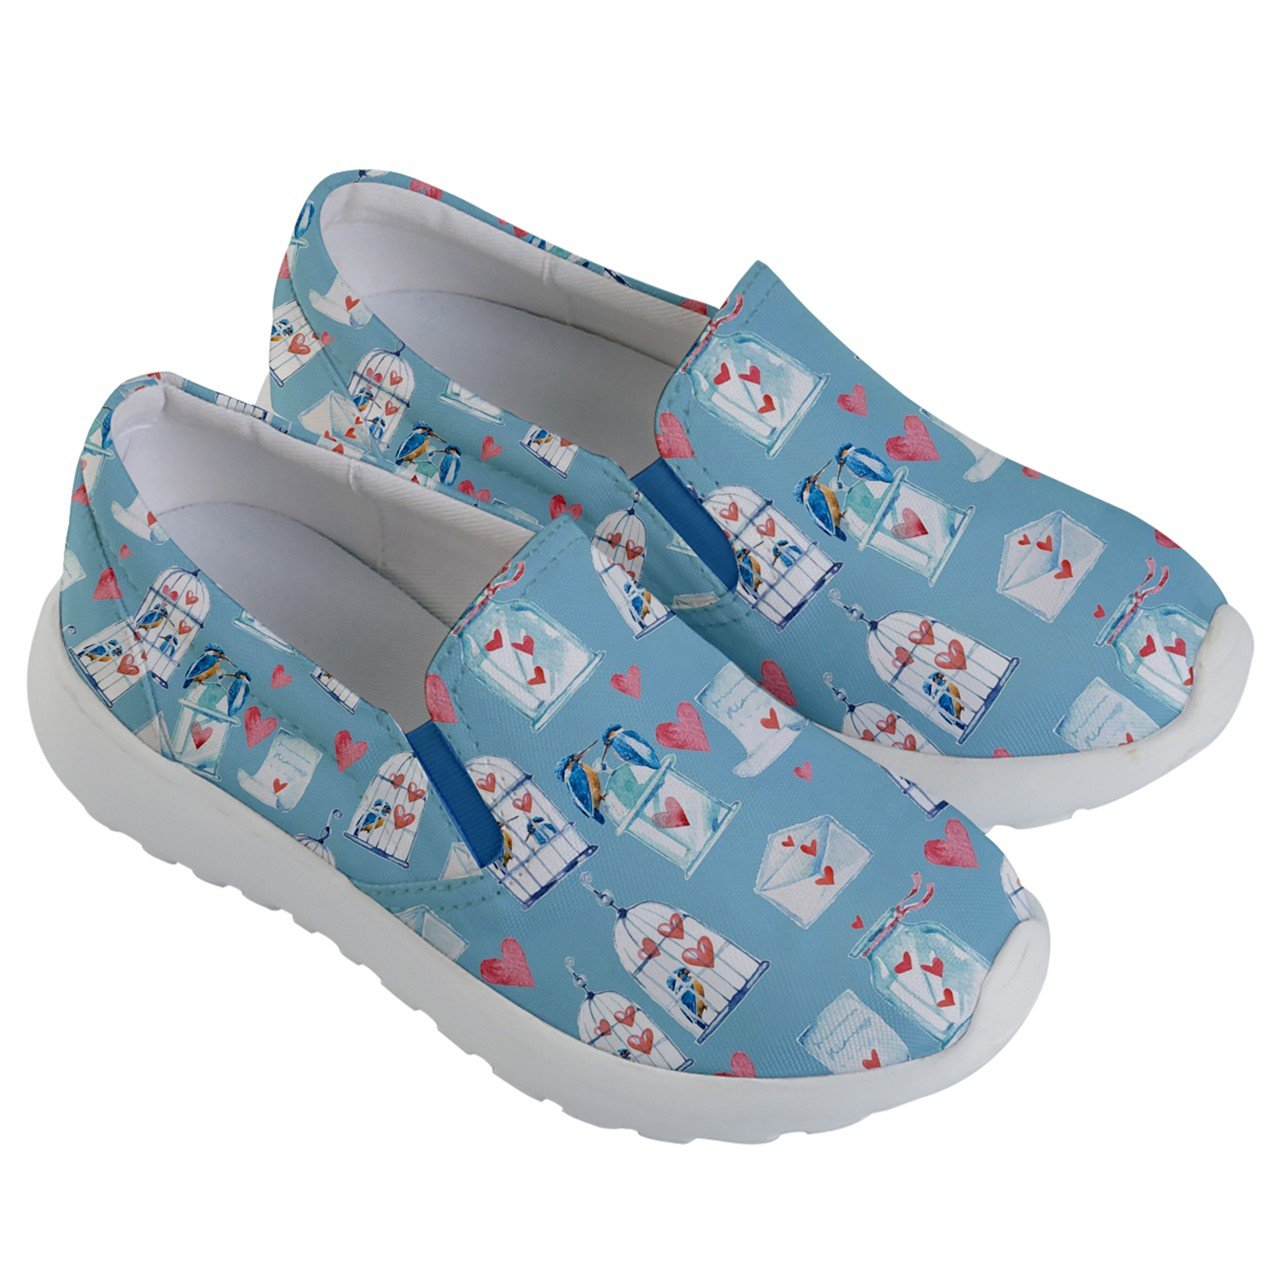 PattyCandy Kids & Toddlers Slip On Love Bird & Cage Lightweight Shoes-US 5.5Y by PattyCandy (Image #3)